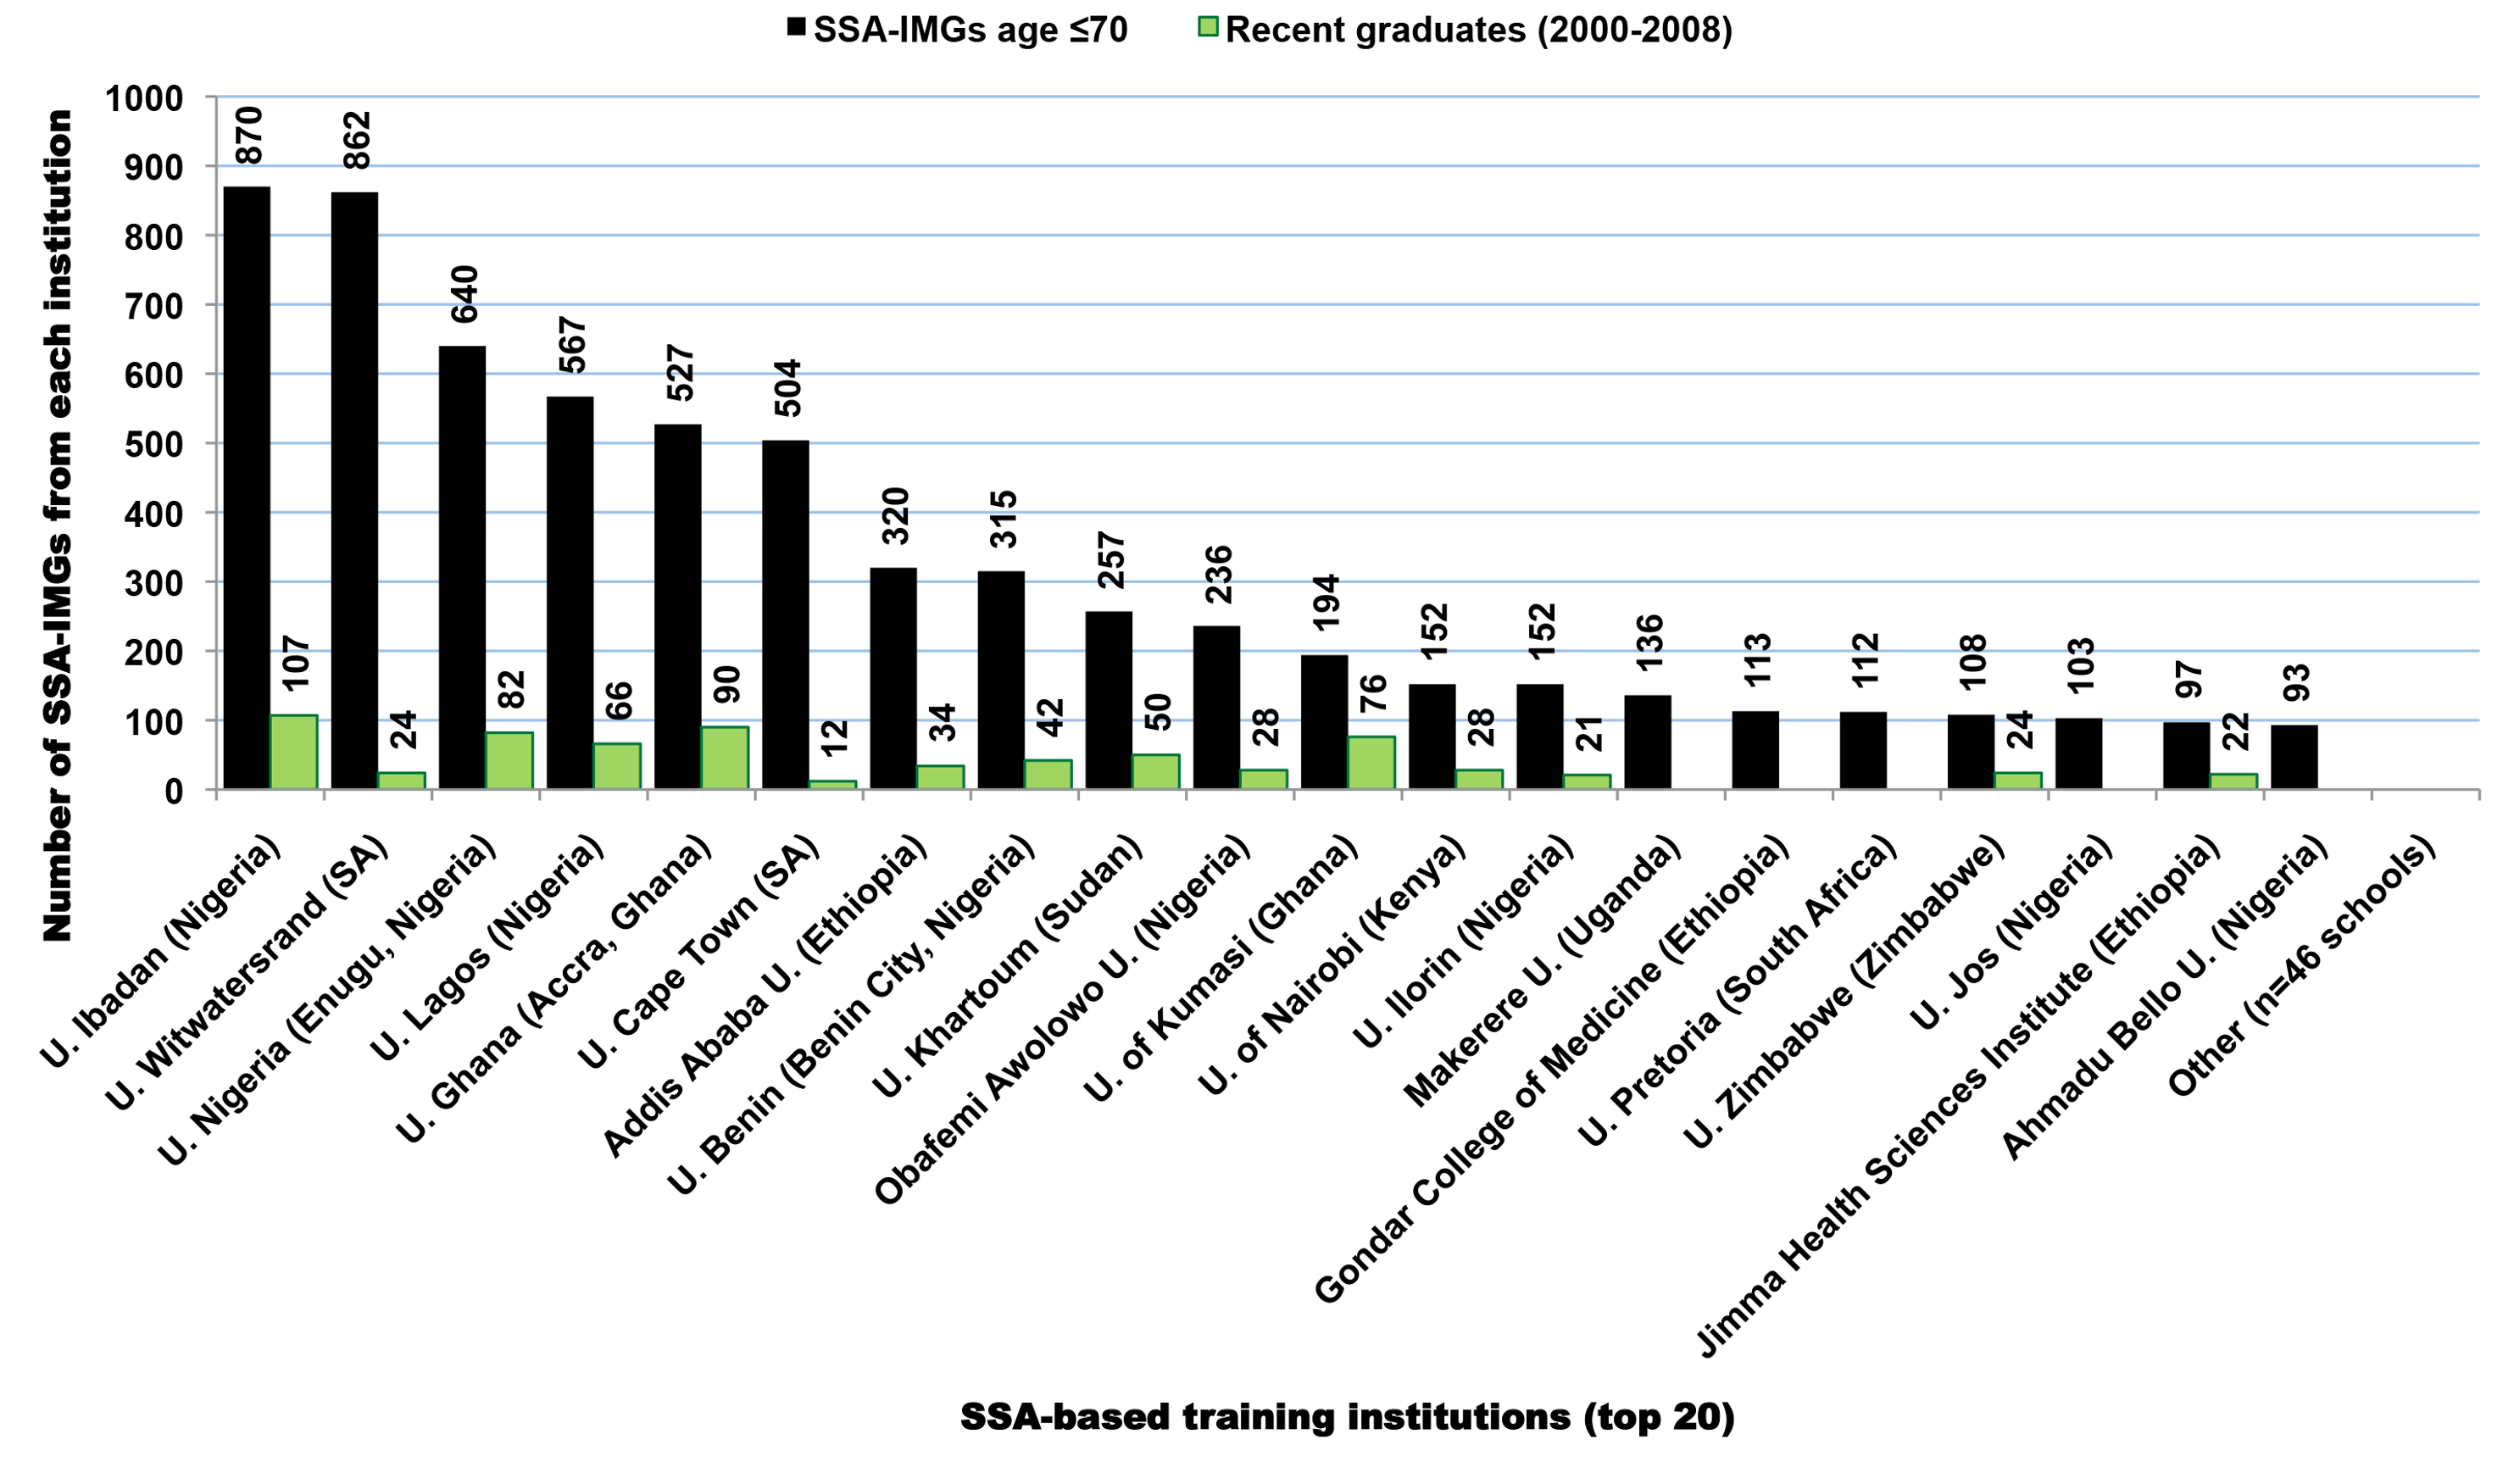 Sub-Saharan African-based institutions with the largest numbers of medical graduates appearing in the US physician workforce.